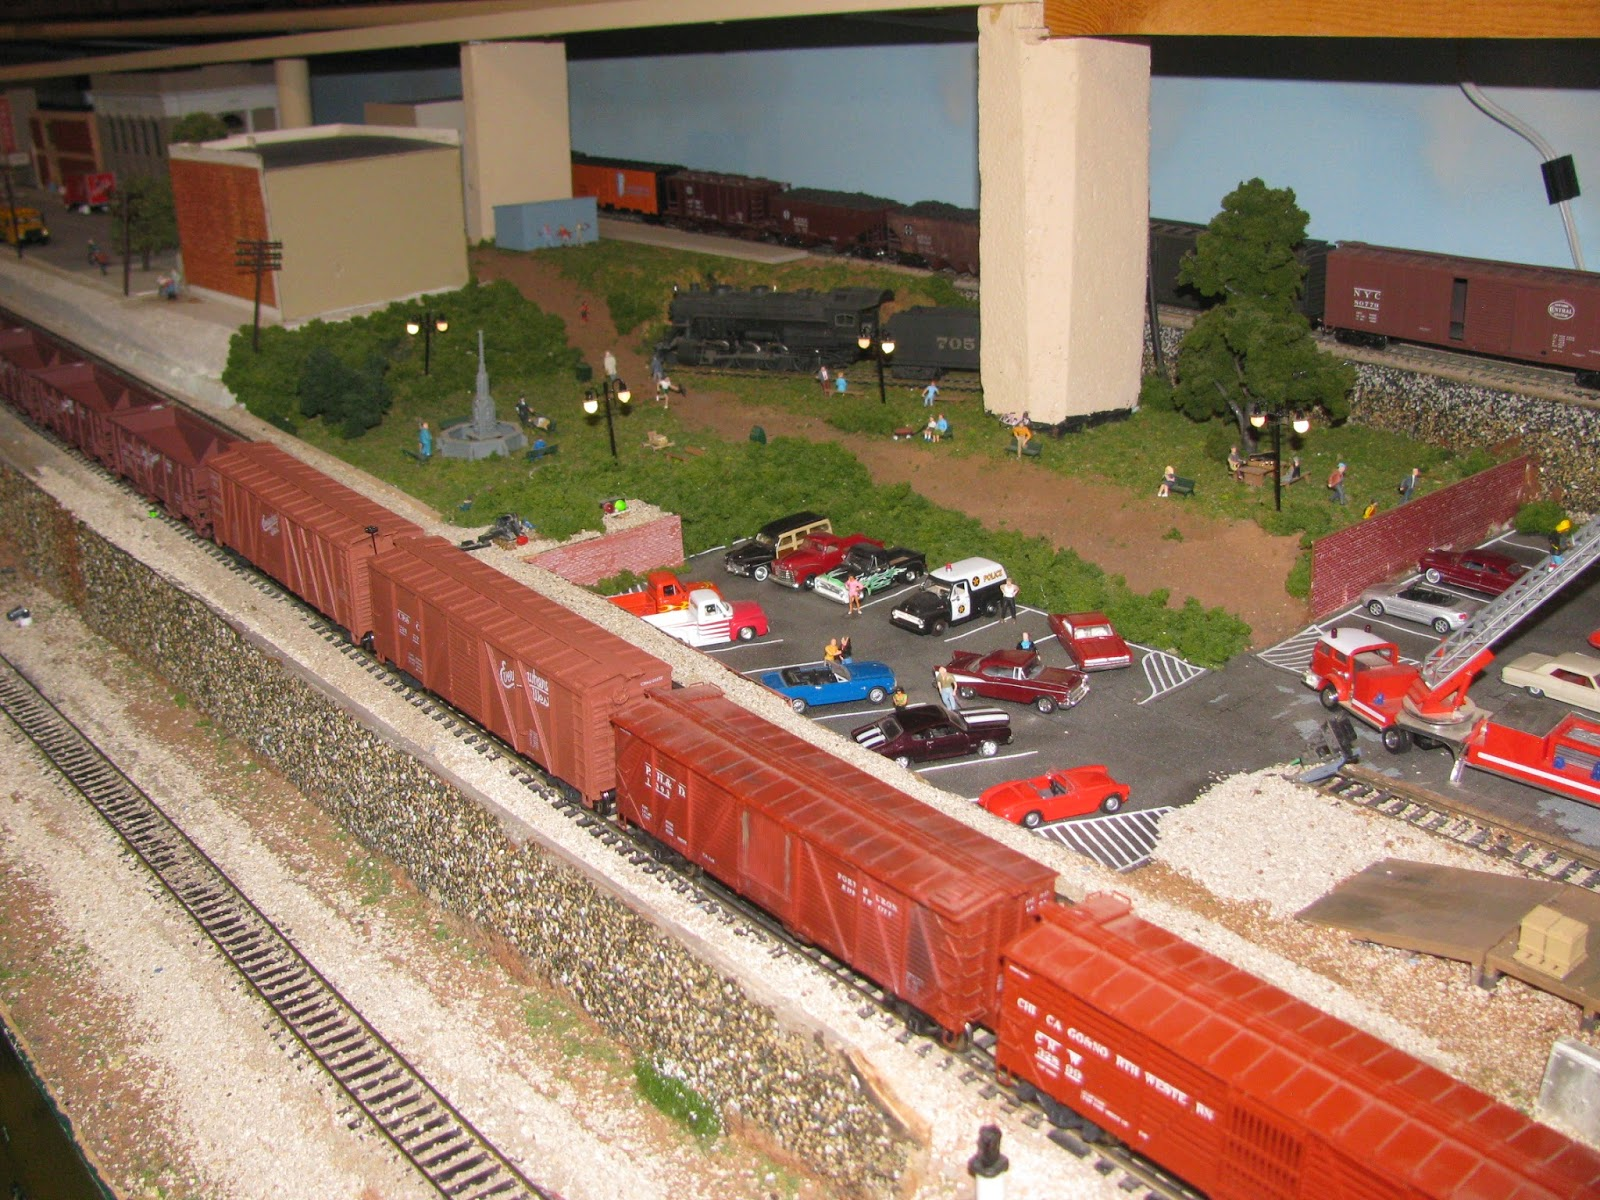 They Have Two Main Rooms, Each With A Different Scale Model Railroad. They  Have The Tracks And Trains Set Up, Along With The Scenery That The Trains  Pass By ...